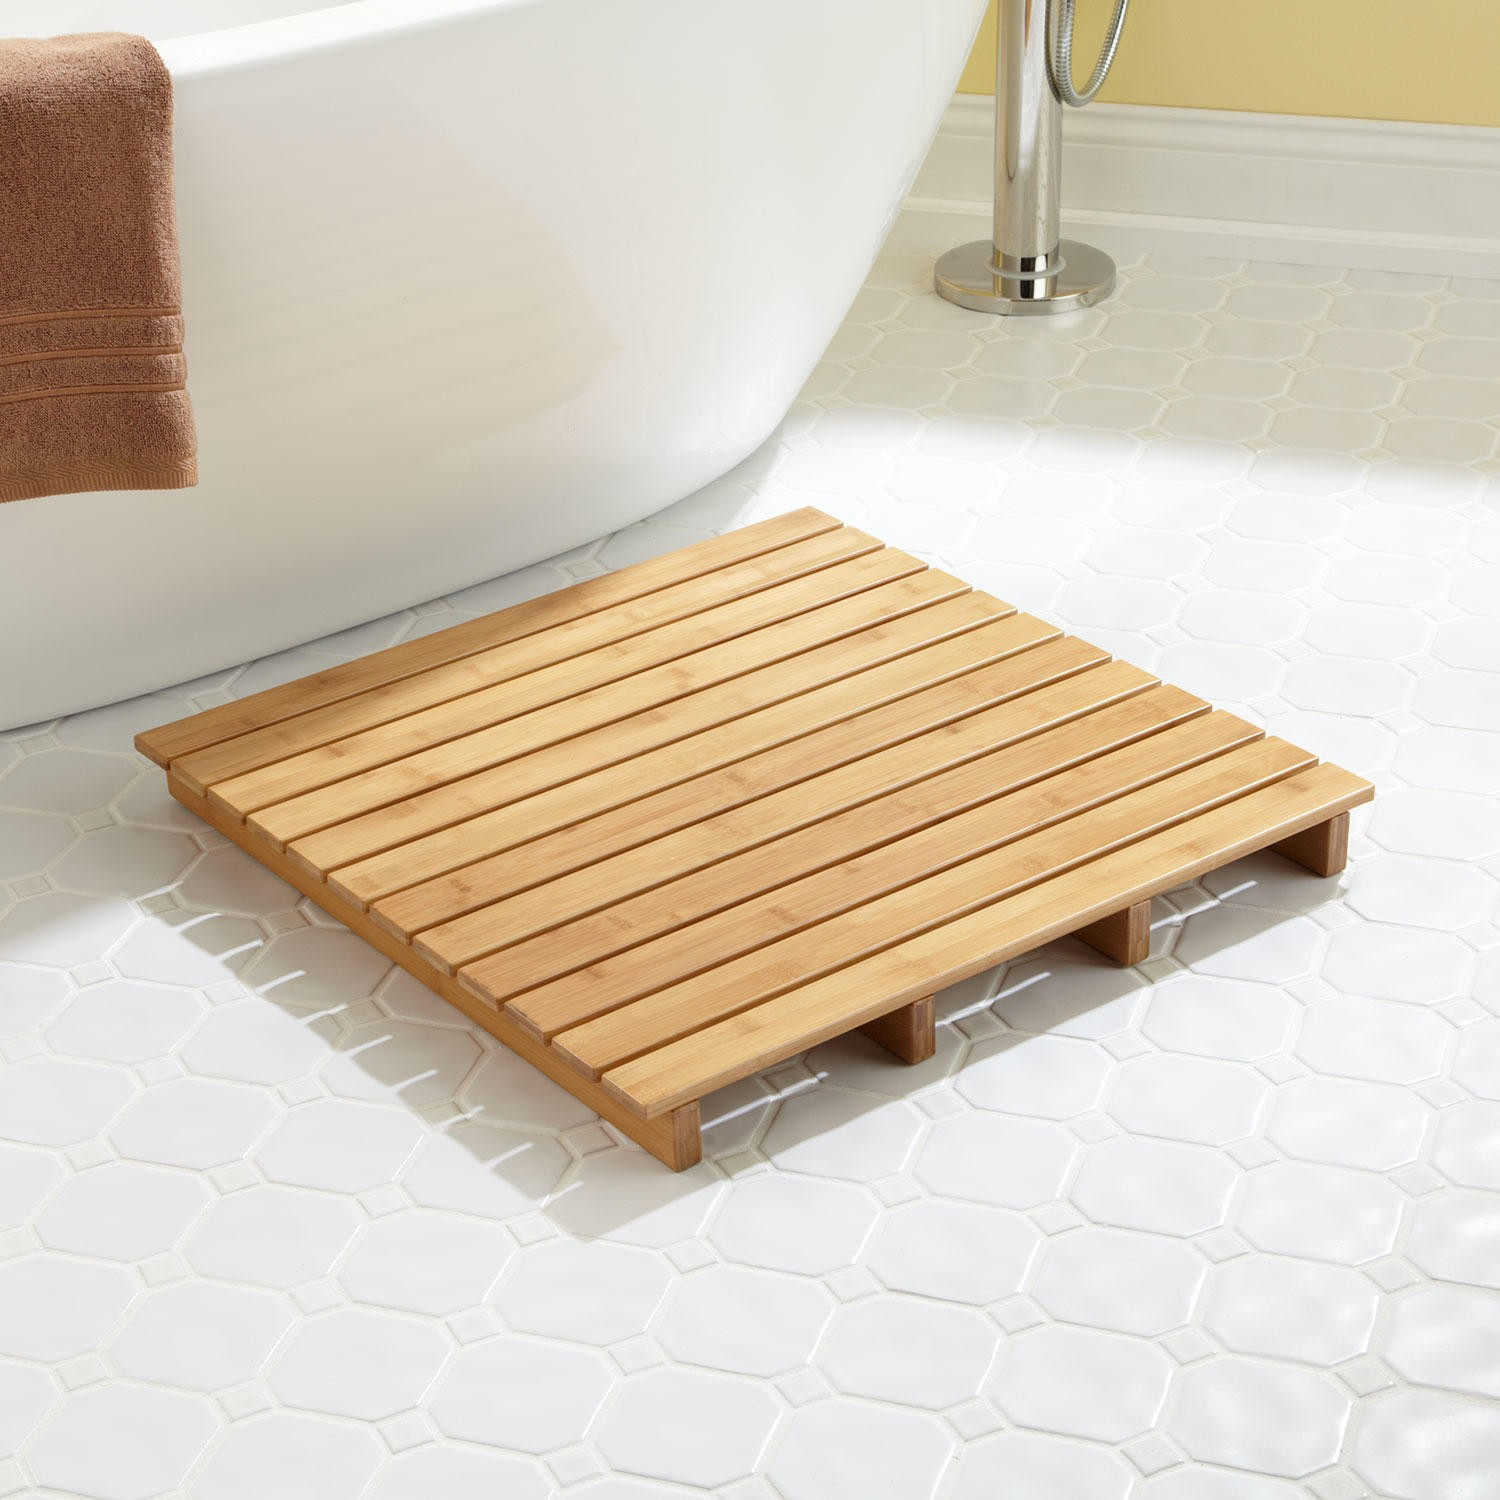 Bathroom Mats 7 bath mat ideas to make your bathroom feel more like a spa